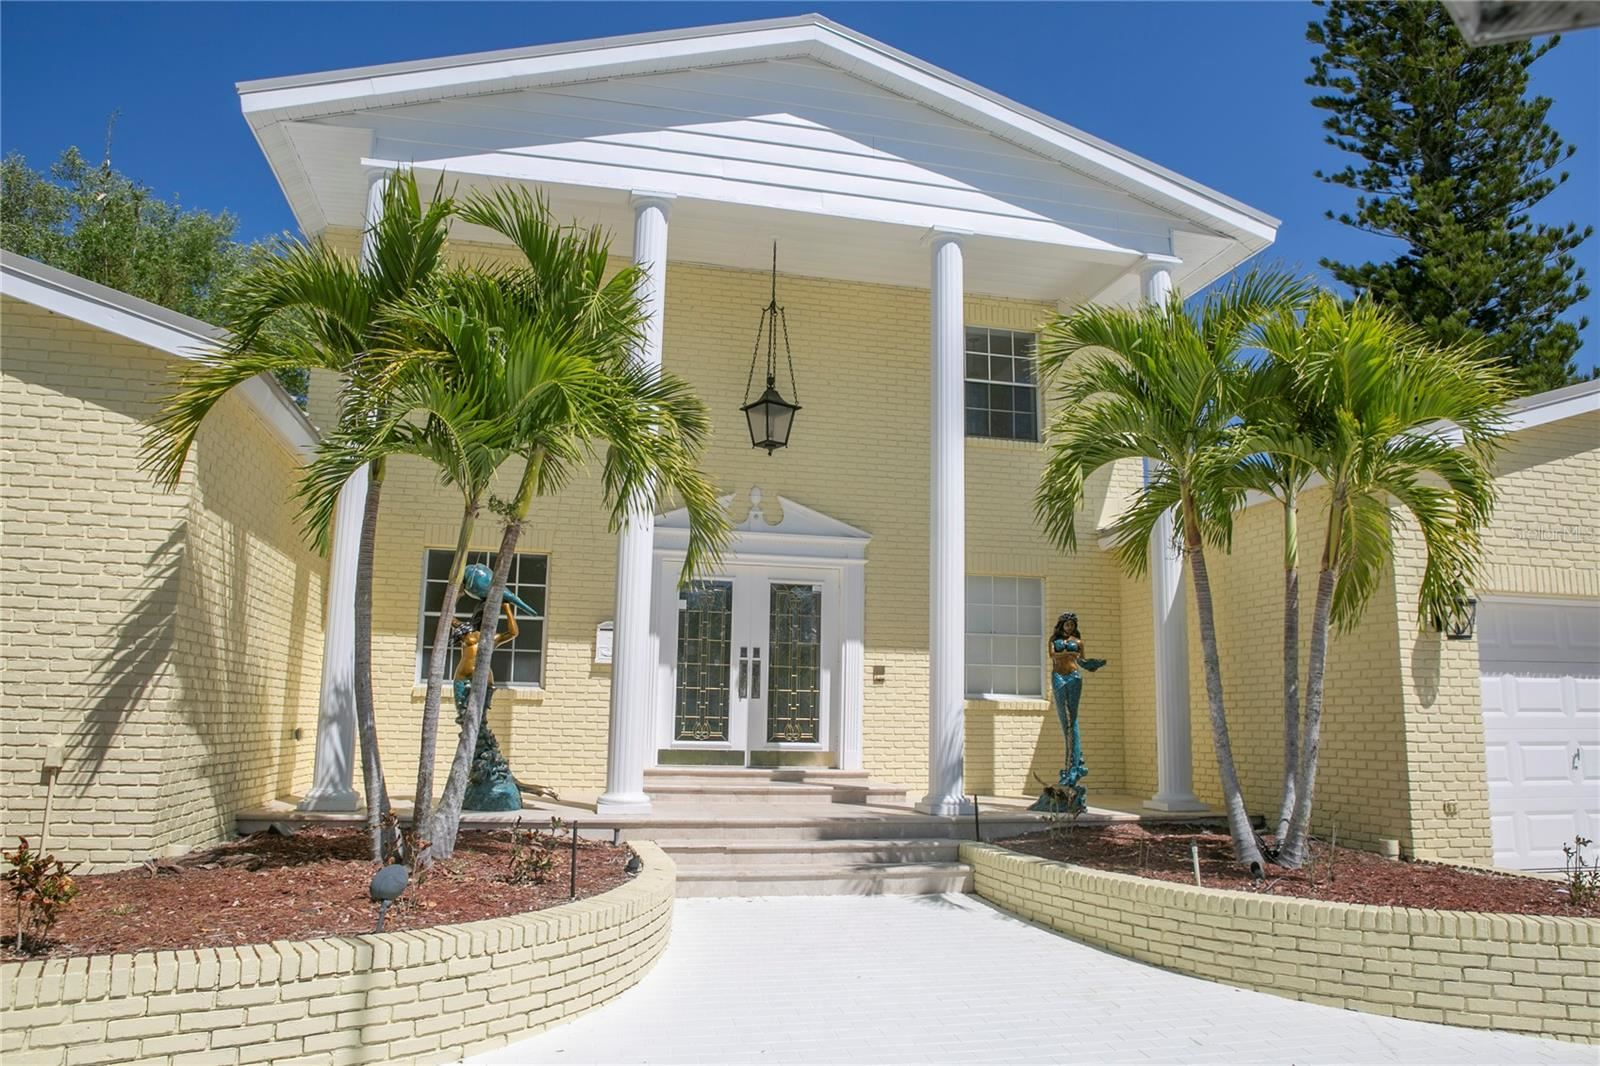 Photo of 154 LOOKOUT POINT DRIVE, OSPREY, FL 34229 (MLS # A4499046)